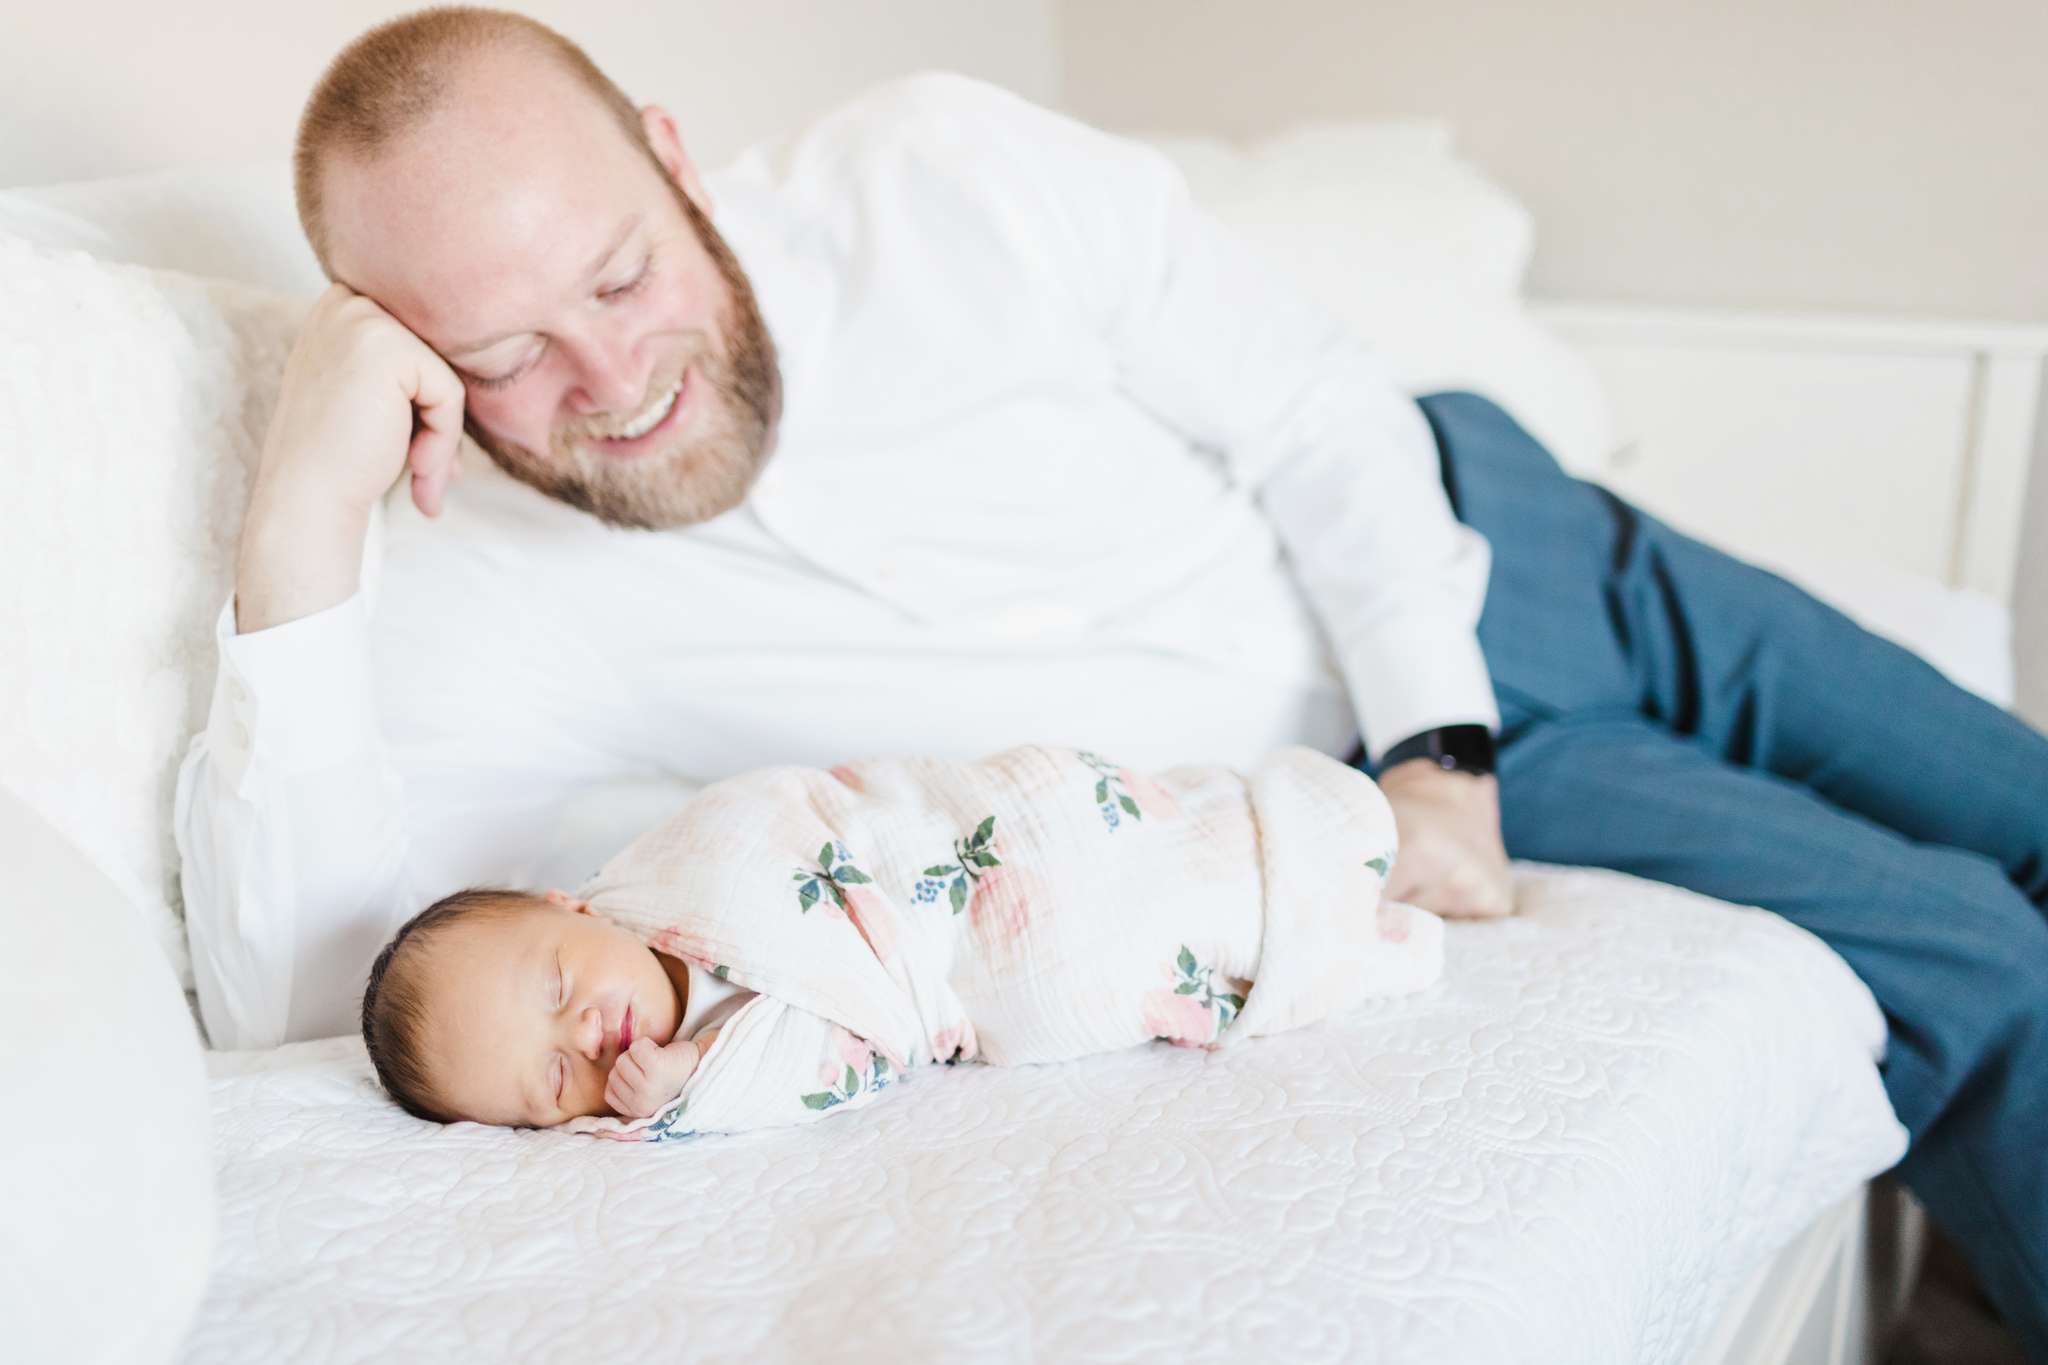 Encinitas Newborn Photographer